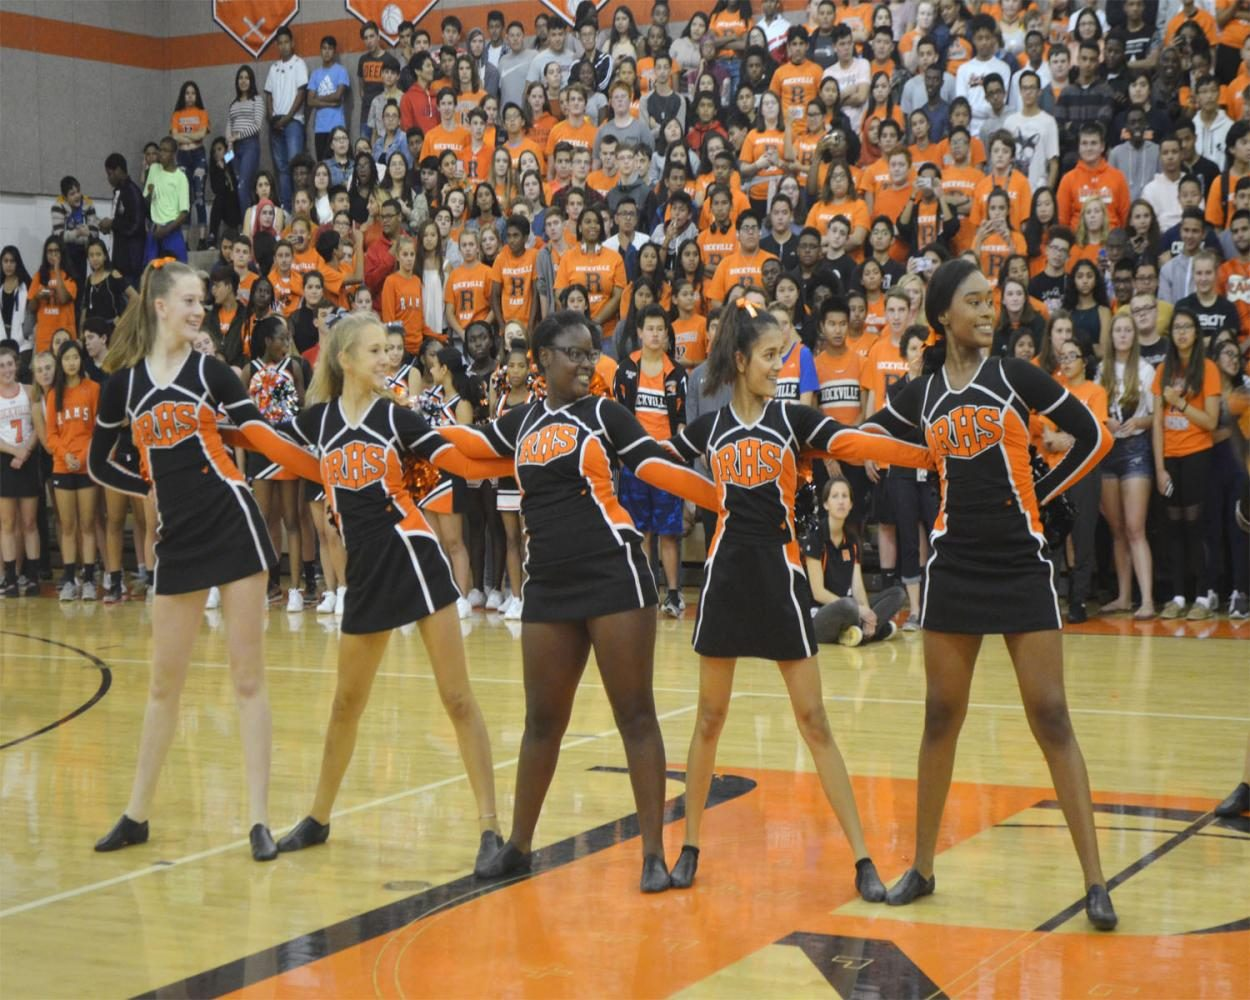 Poms perform at the pep rally.